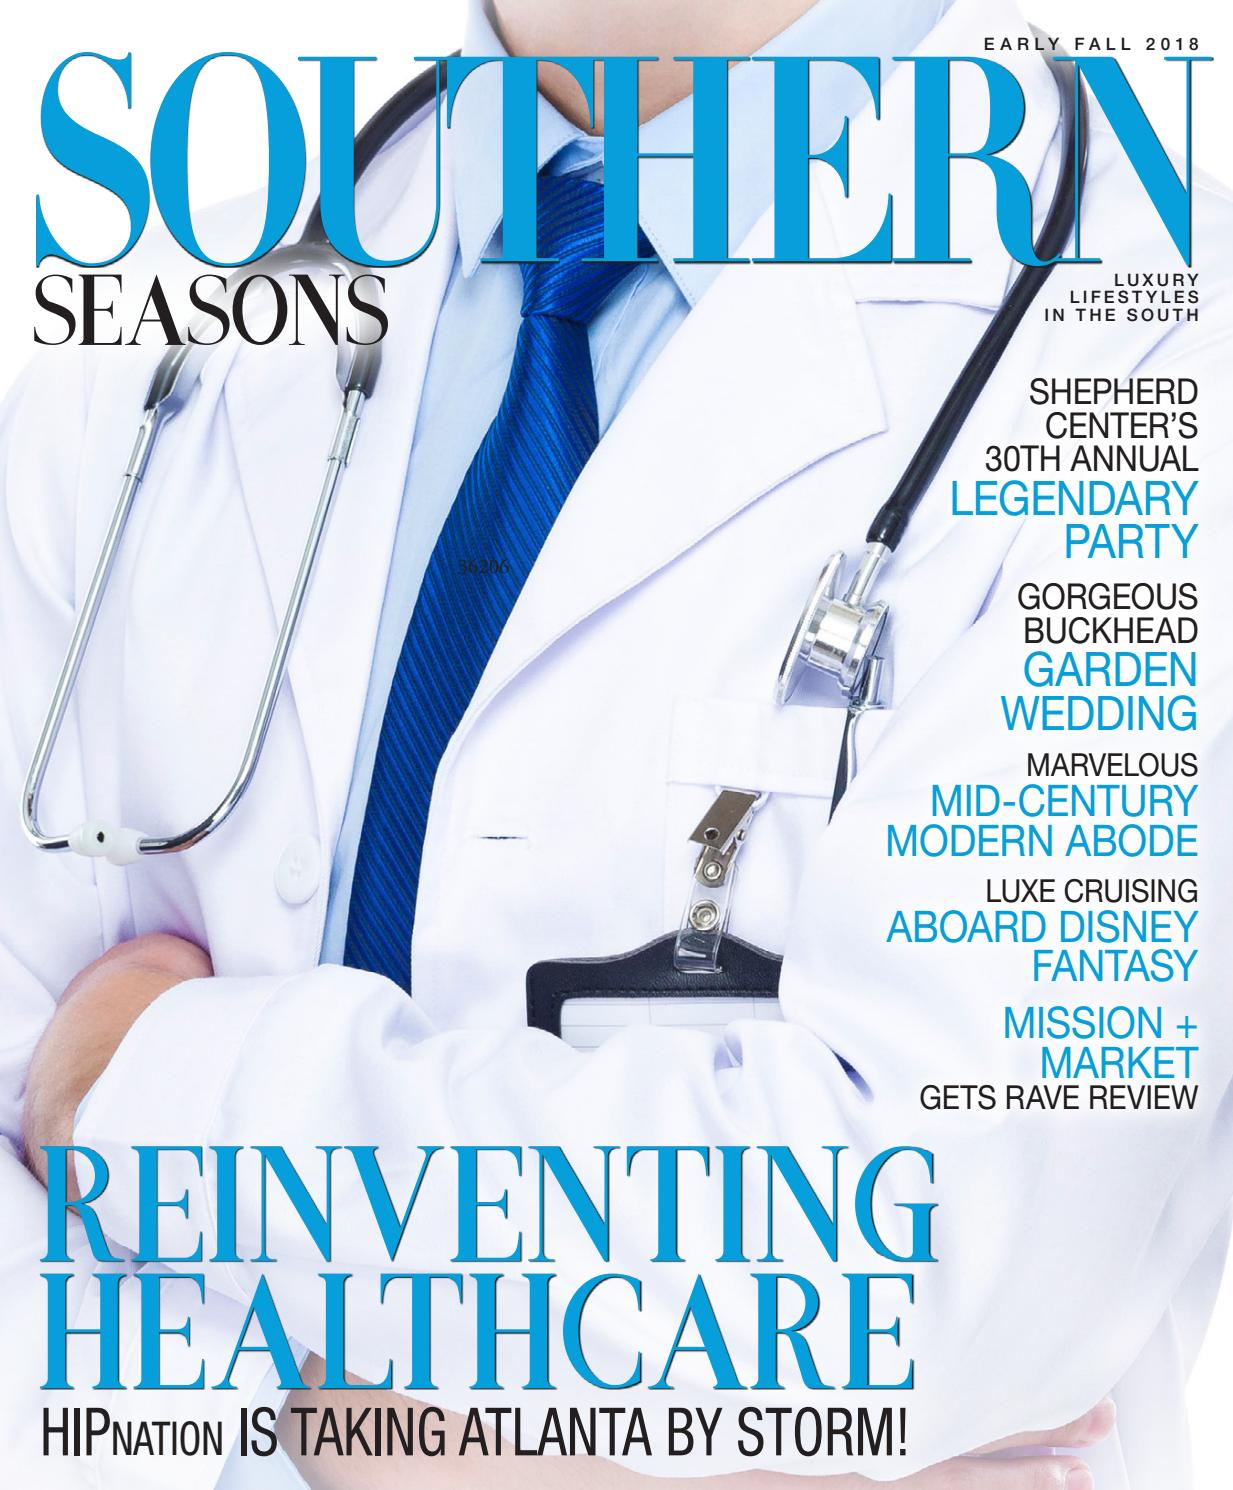 c97b504c8b65 Southern Seasons Magazine Fall 2018 Issue by Southern Seasons Magazine -  issuu